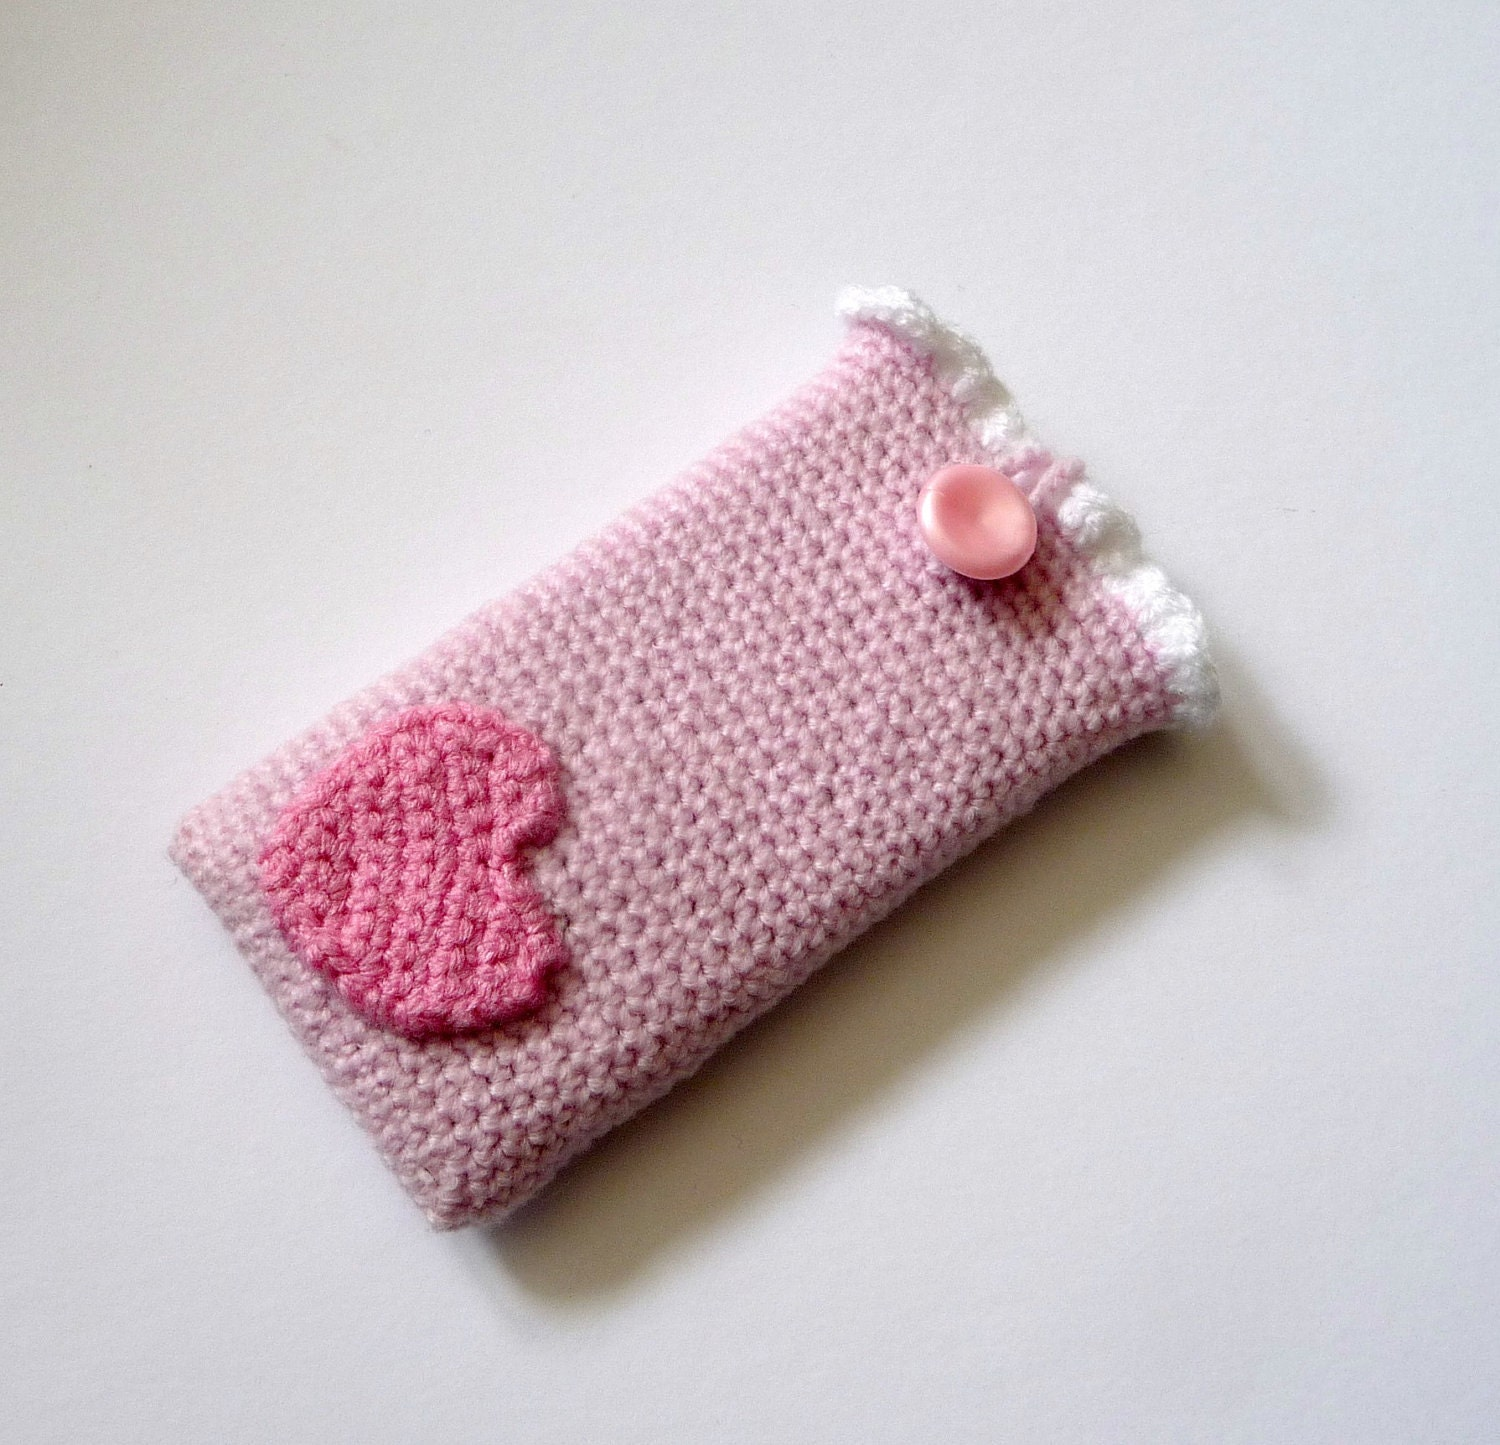 Free Crochet Pattern For I Phone Case : Items similar to Hearts and Frills - Crochet Phone / Ipod ...